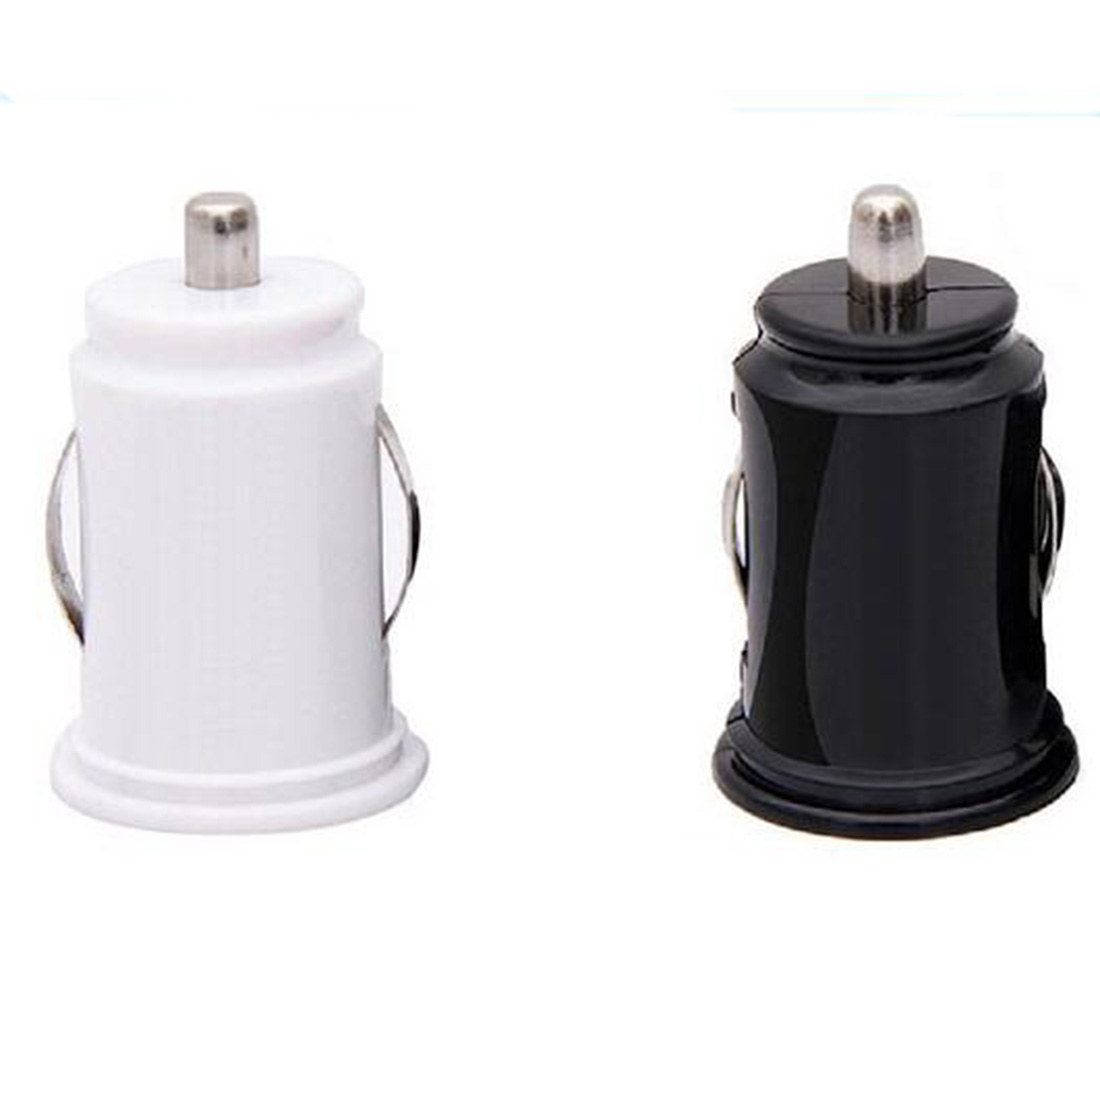 Universal 2.1A 5V Dual USB car charger 2 port Cigarette Lighter Adapter Charger USB Power Adapter For all smart phones universal convenient 5v usb adapter power bank w torch light indicator white 2 x 18650